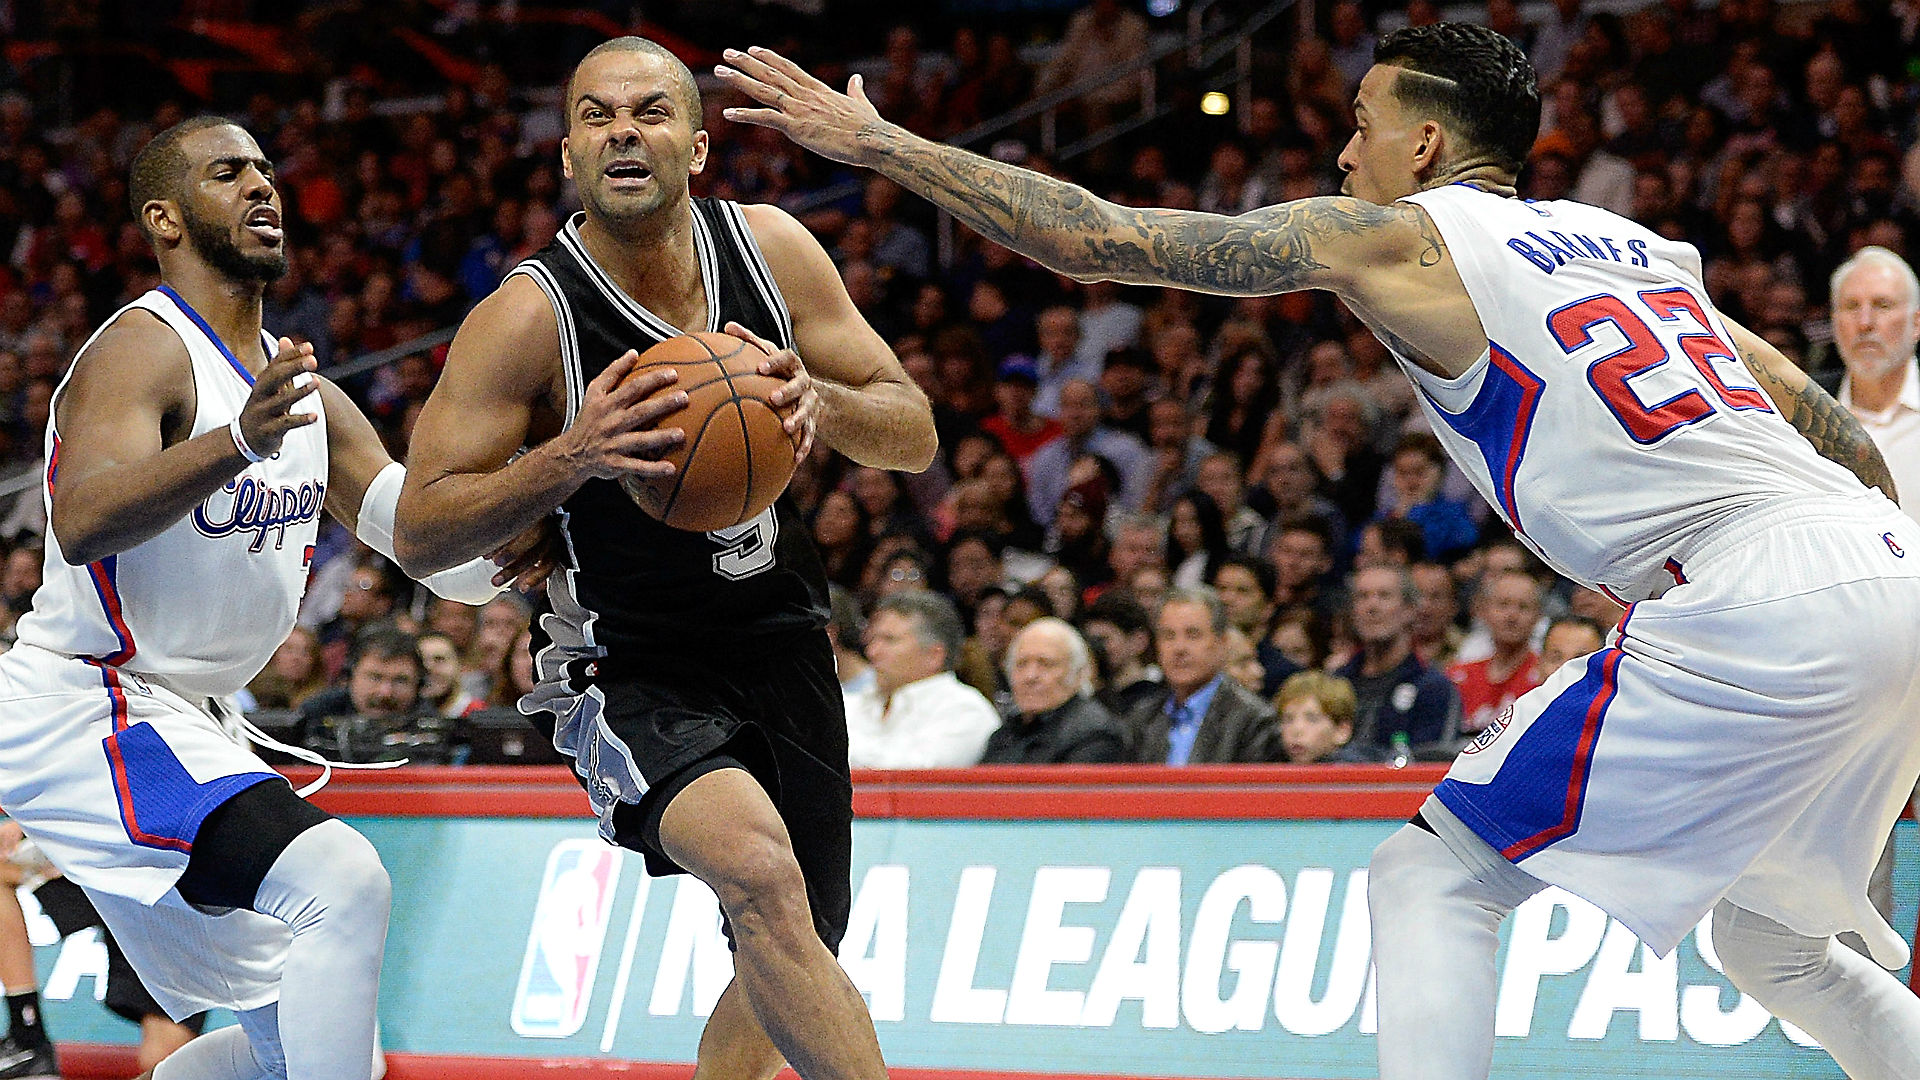 NBA playoff series odds and Game 1 lines – Spurs favored to advance, dogs in opener